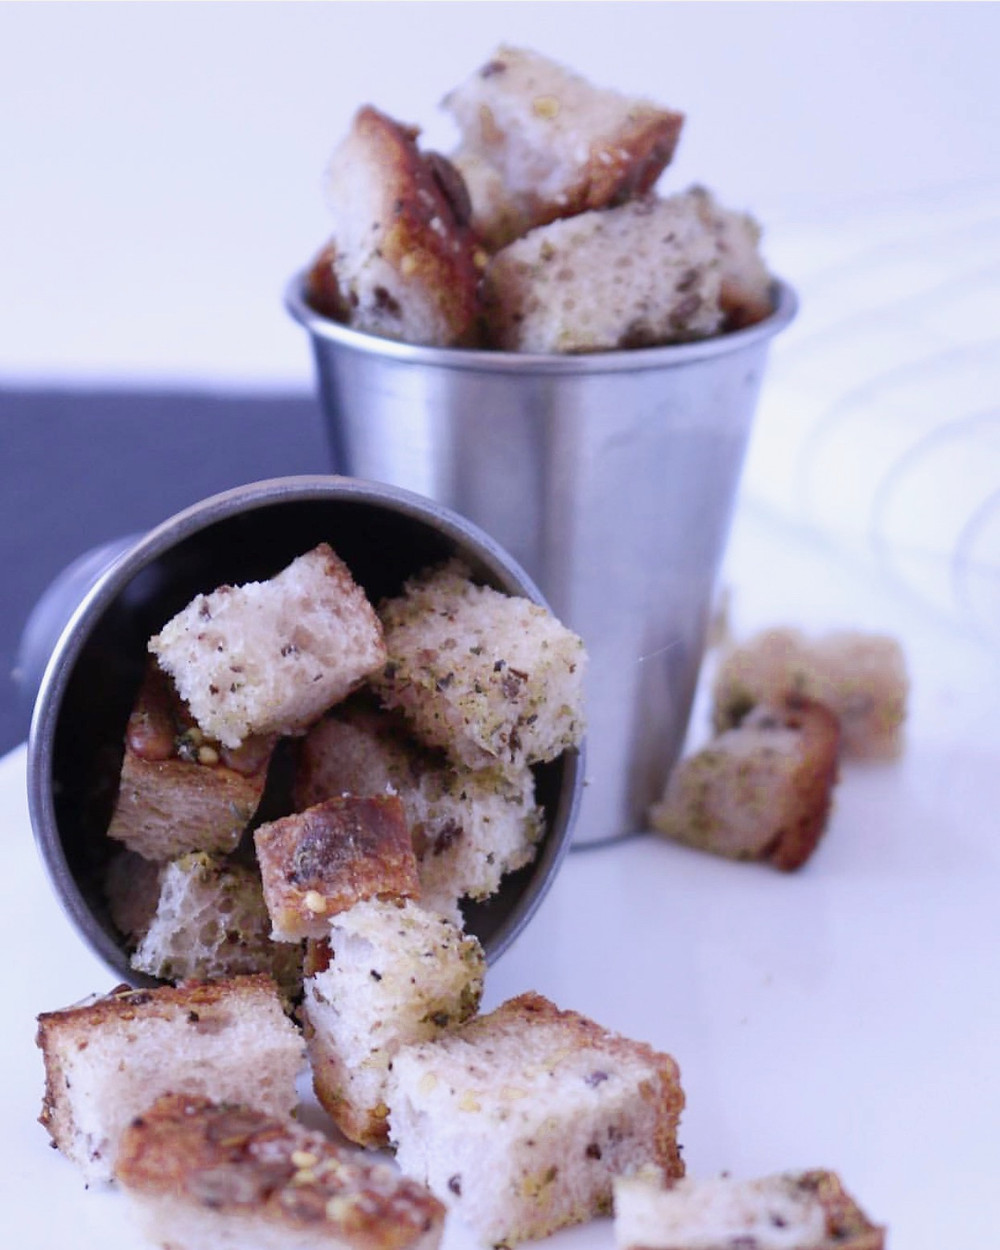 Gluten-free Croutons Using Little Northern Bakehouse Bread